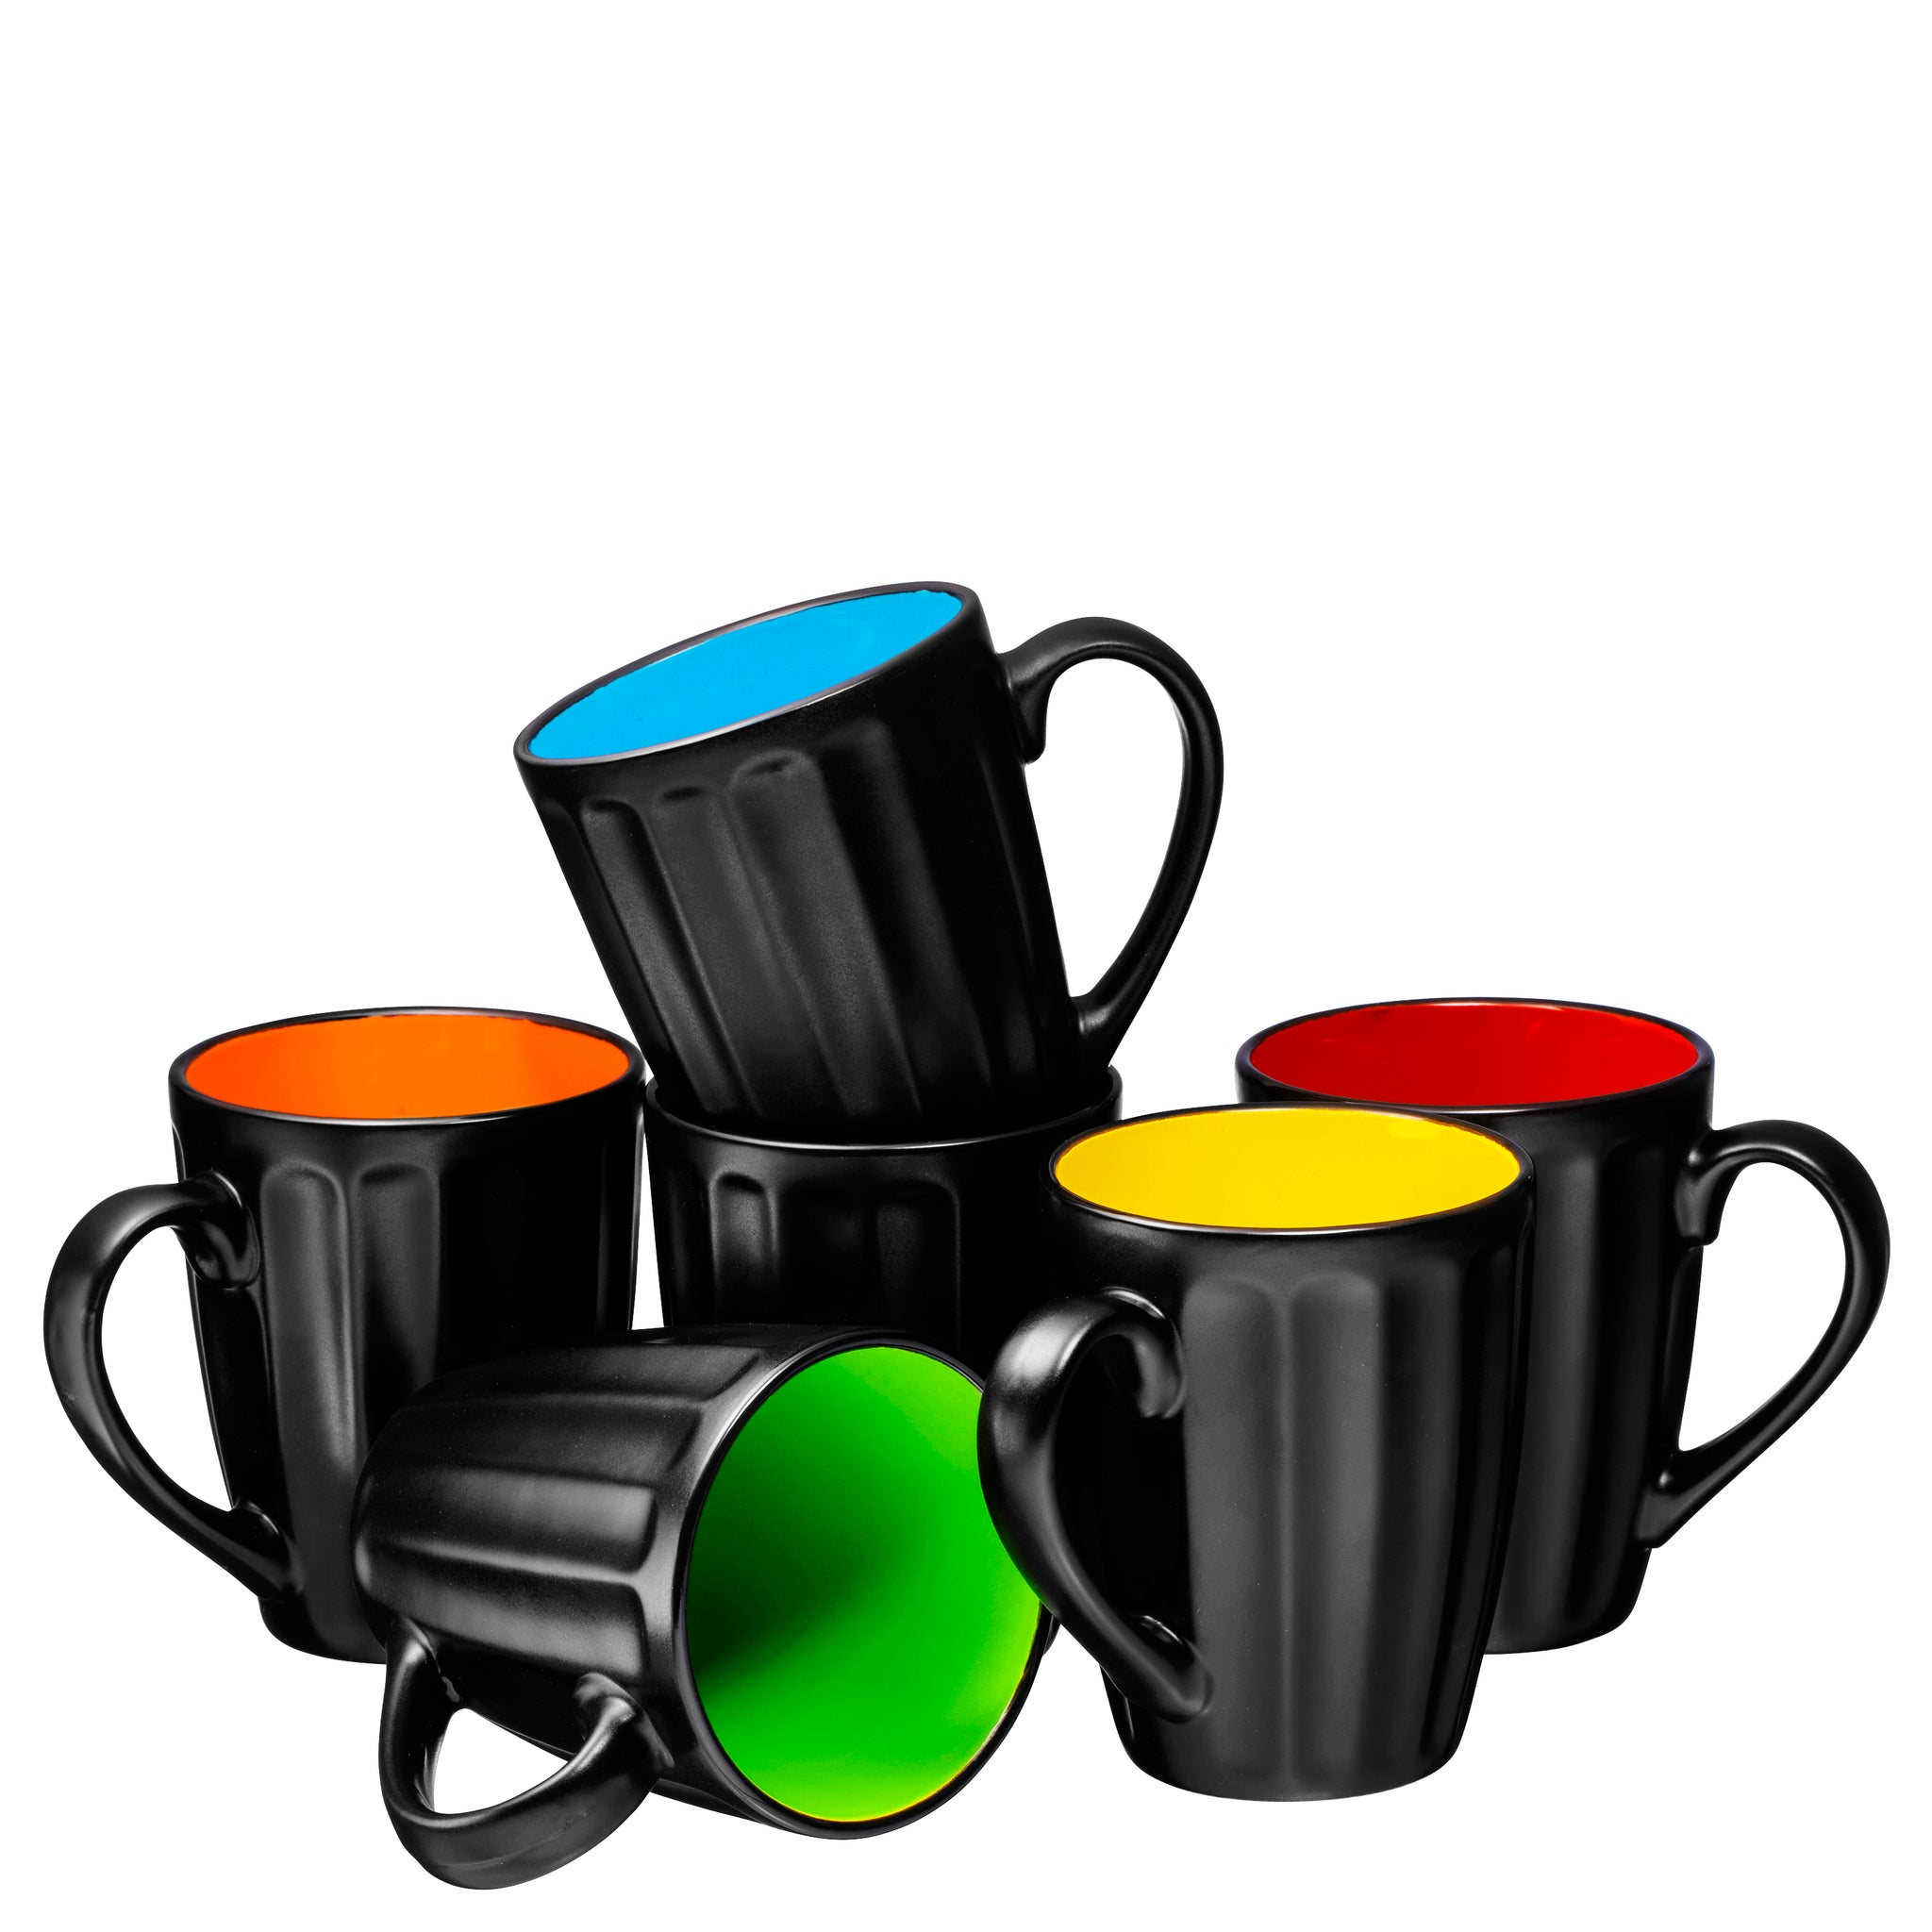 Set of 6 Large-sized 16 Ounce Ceramic Coffee Grooved Mugs - Bruntmor